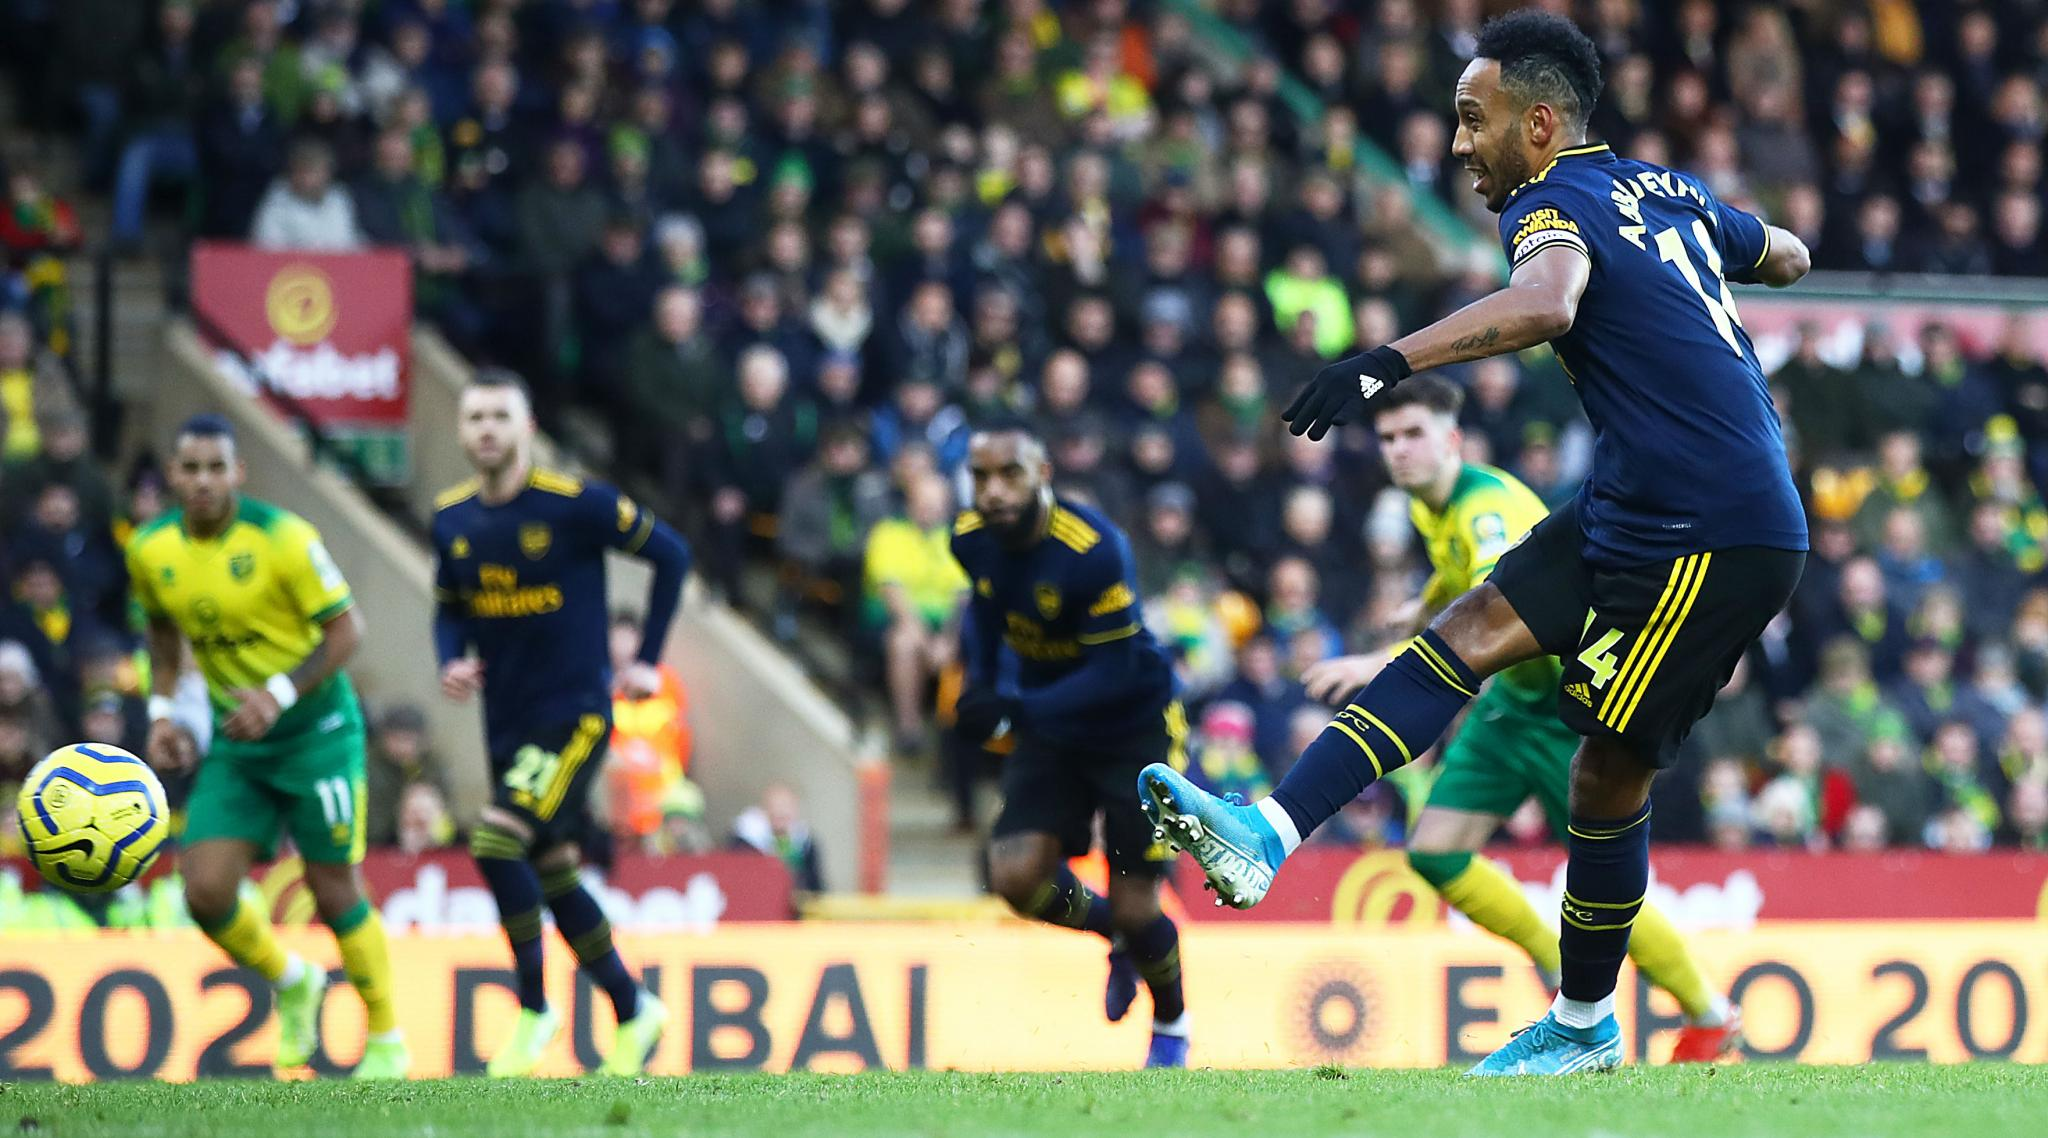 Arsenal 2-2 Norwich City, Premier League 2019-20 Result: Pierr-Emerick Aubameyang Double Avoids Defeat for Gunners But Extend Winless Streak